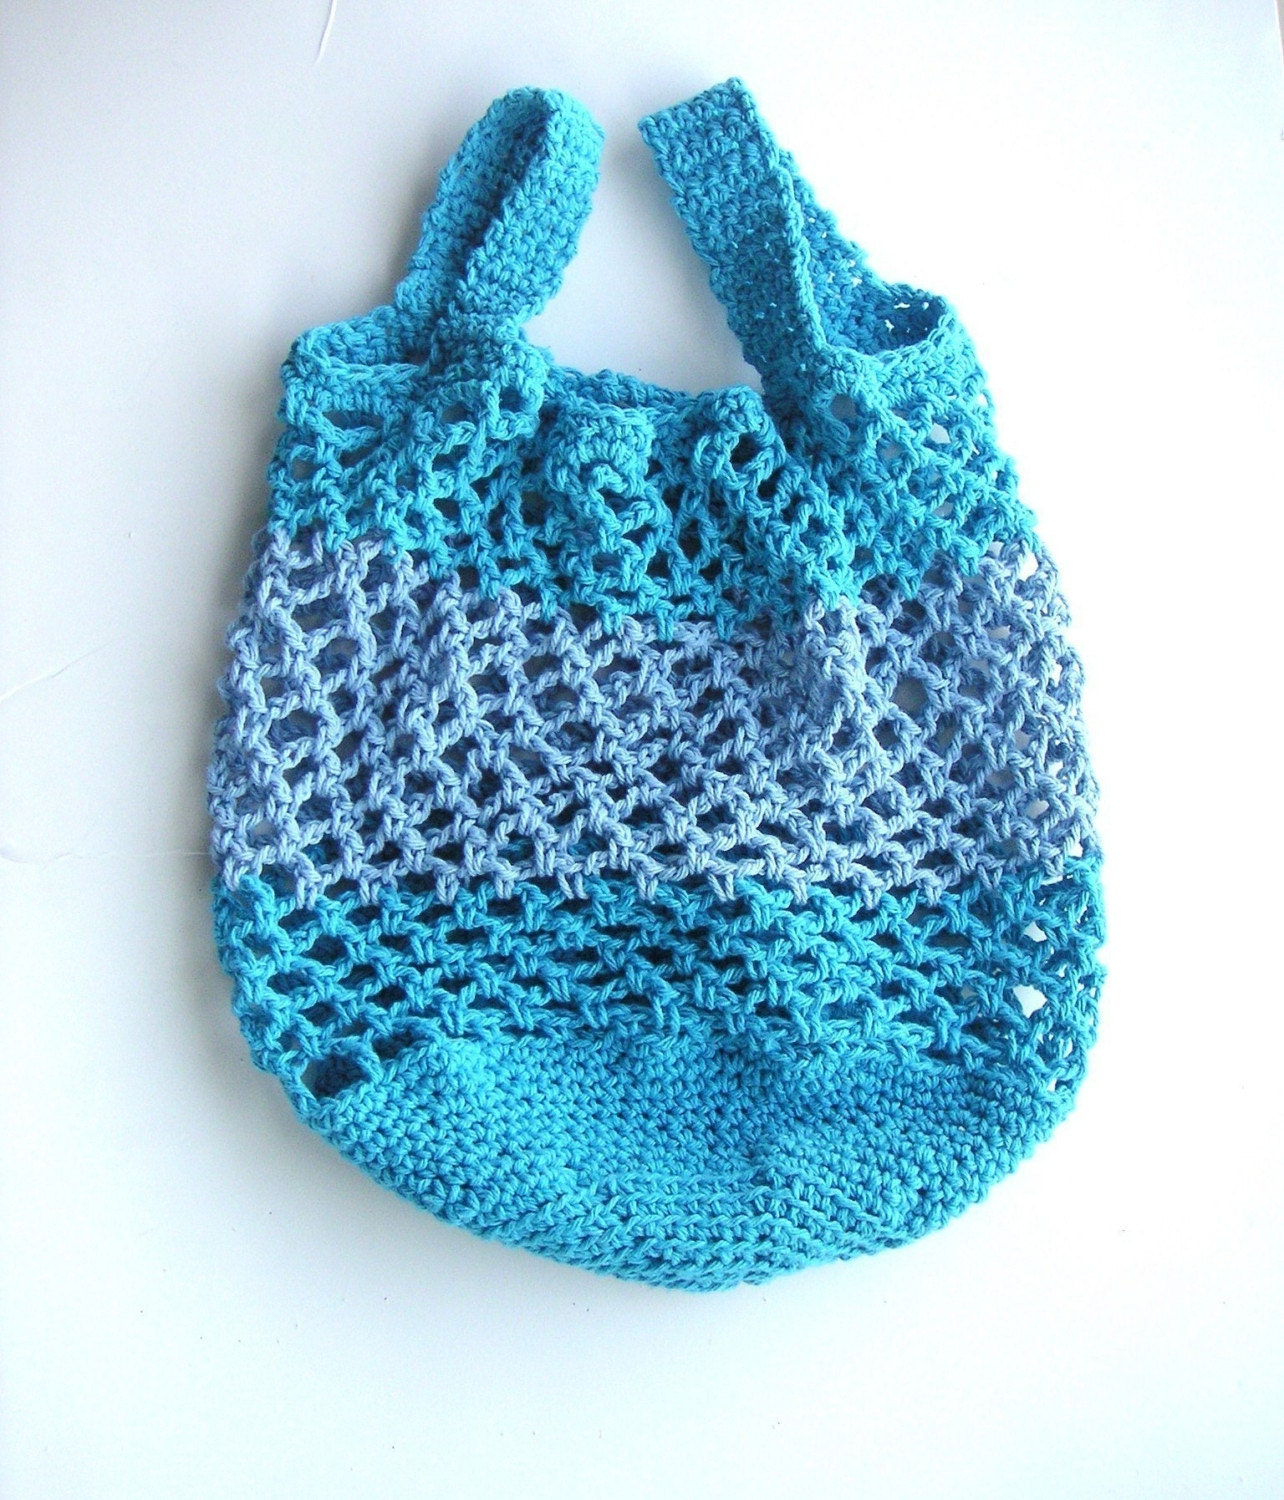 Easy Crochet Tote Bag Pattern : Cotton Market Bag Crochet Pattern Tutorial by GraceKnittingPattern